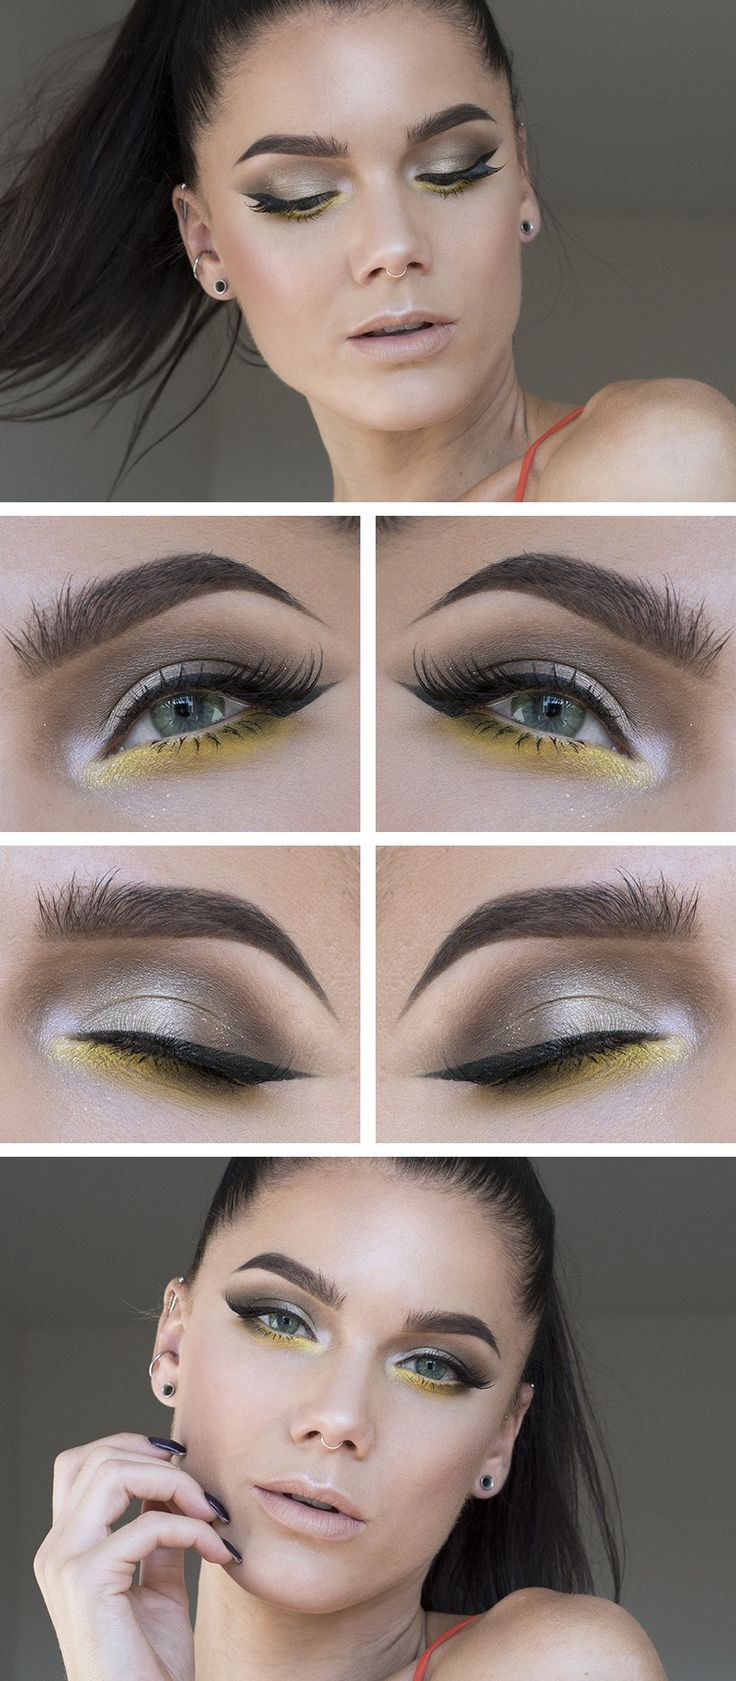 Todays look – Primary yellow